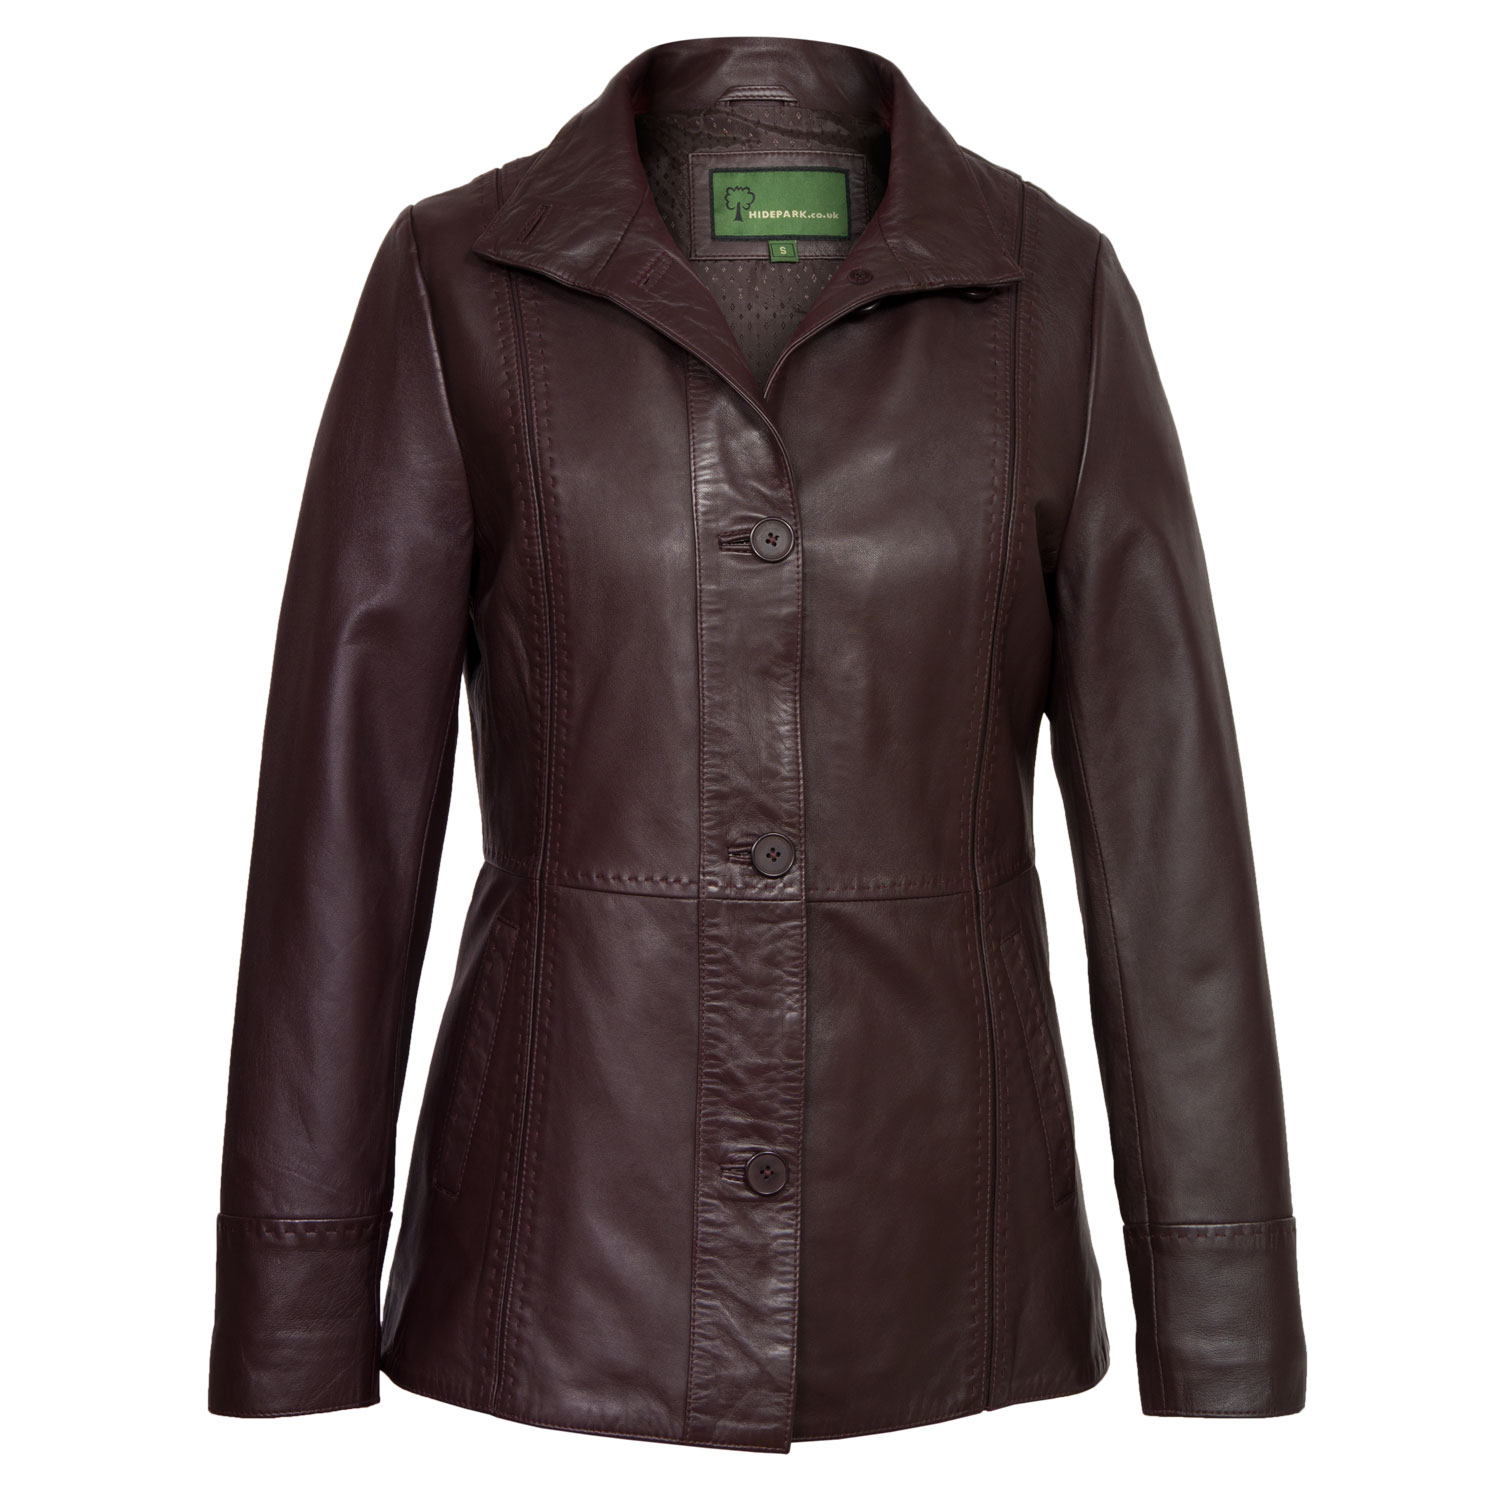 Women's Burgundy Leather Jacket: Maggie